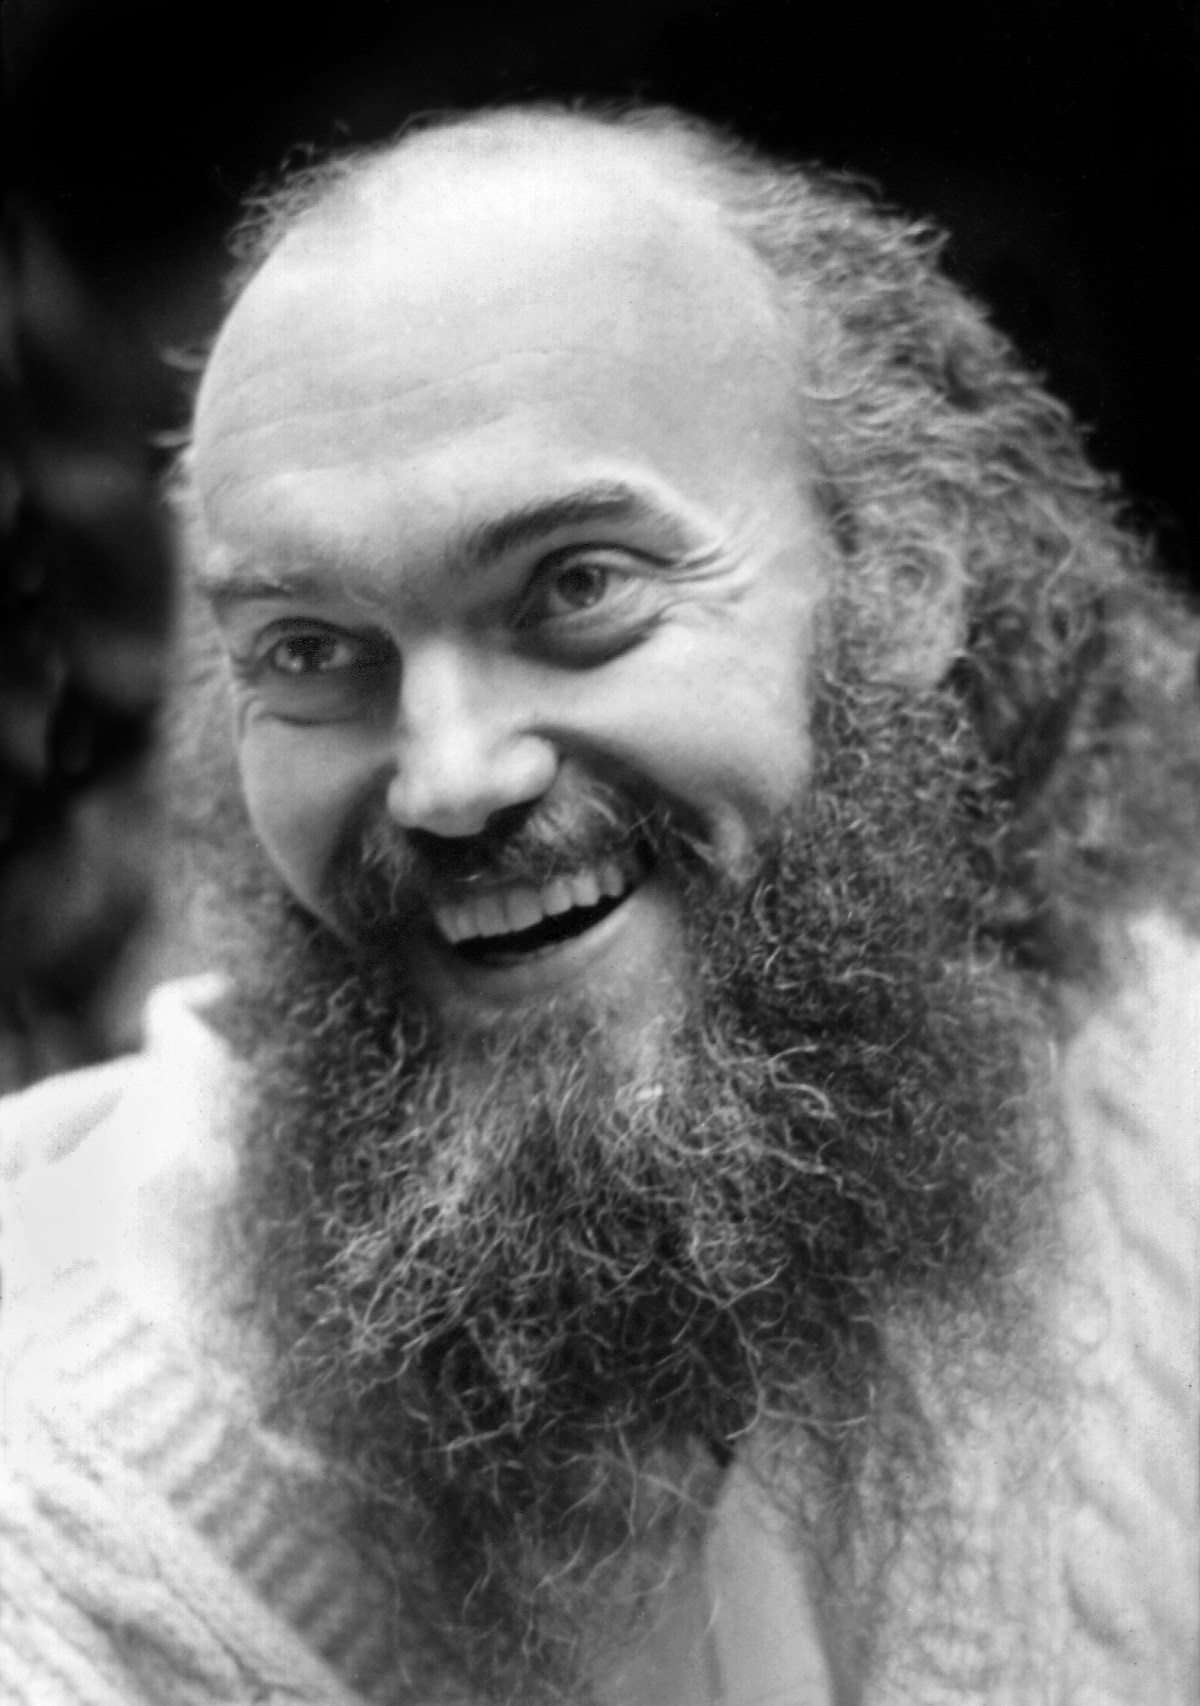 Ram Dass travelled to India in the 1960s to study spiritualism